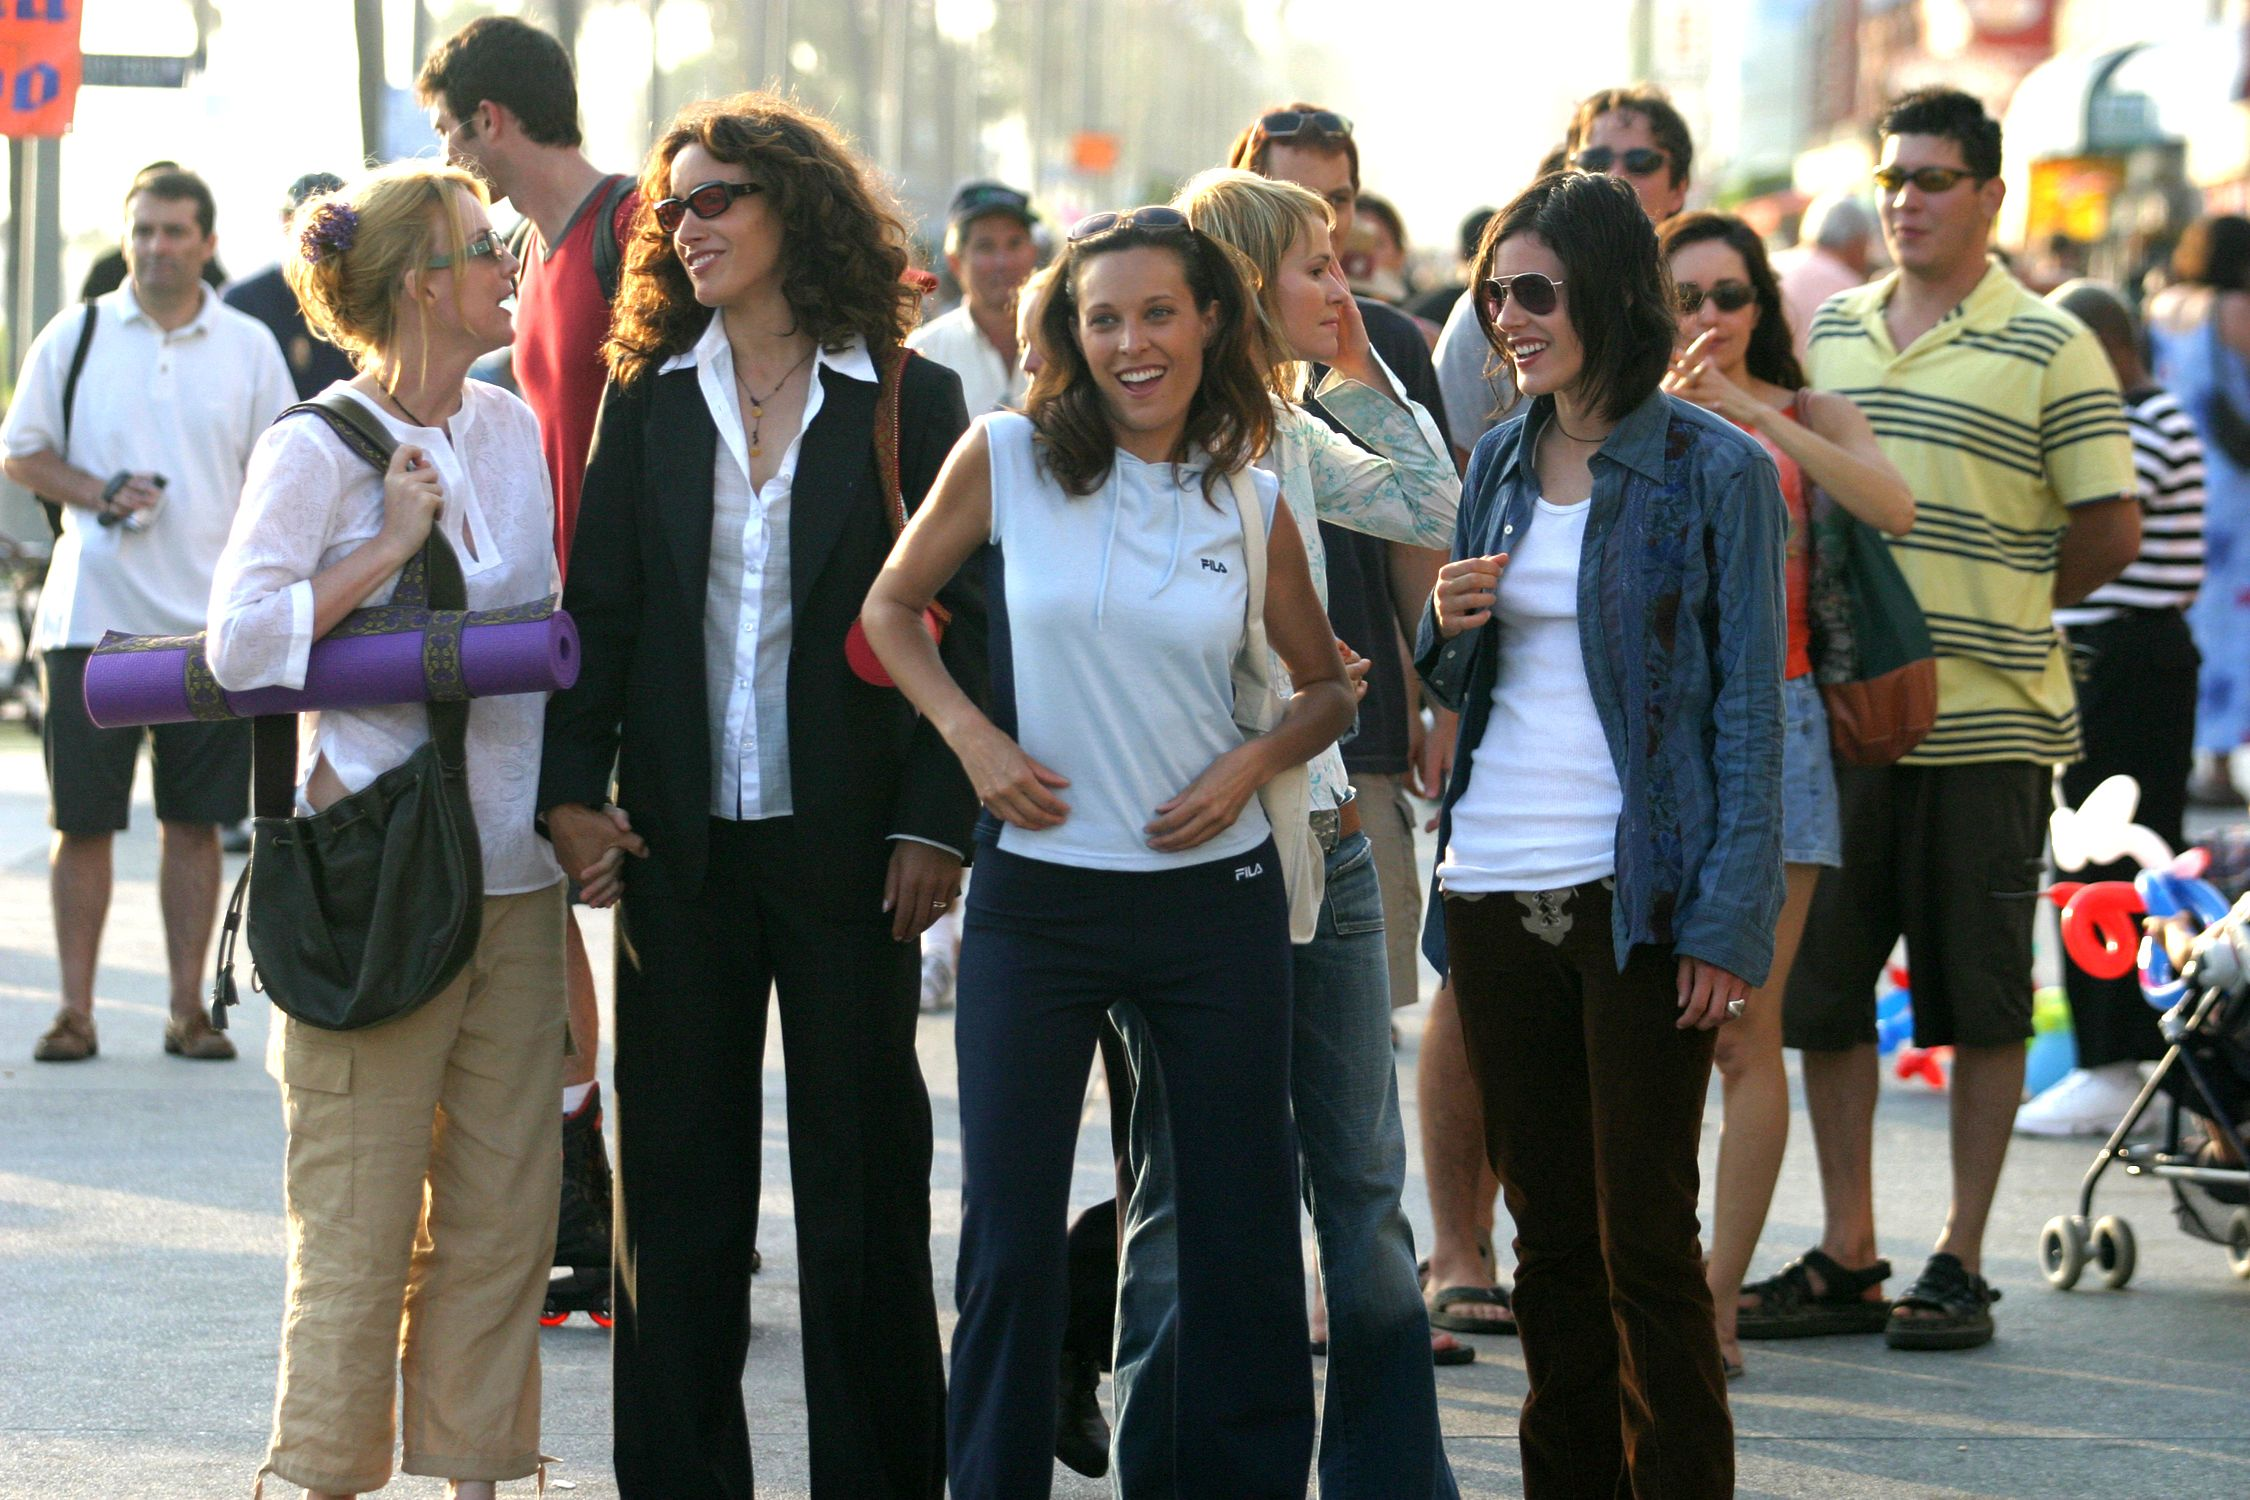 The L Word: Your Ultimate Binge-Watch Guide to the Original